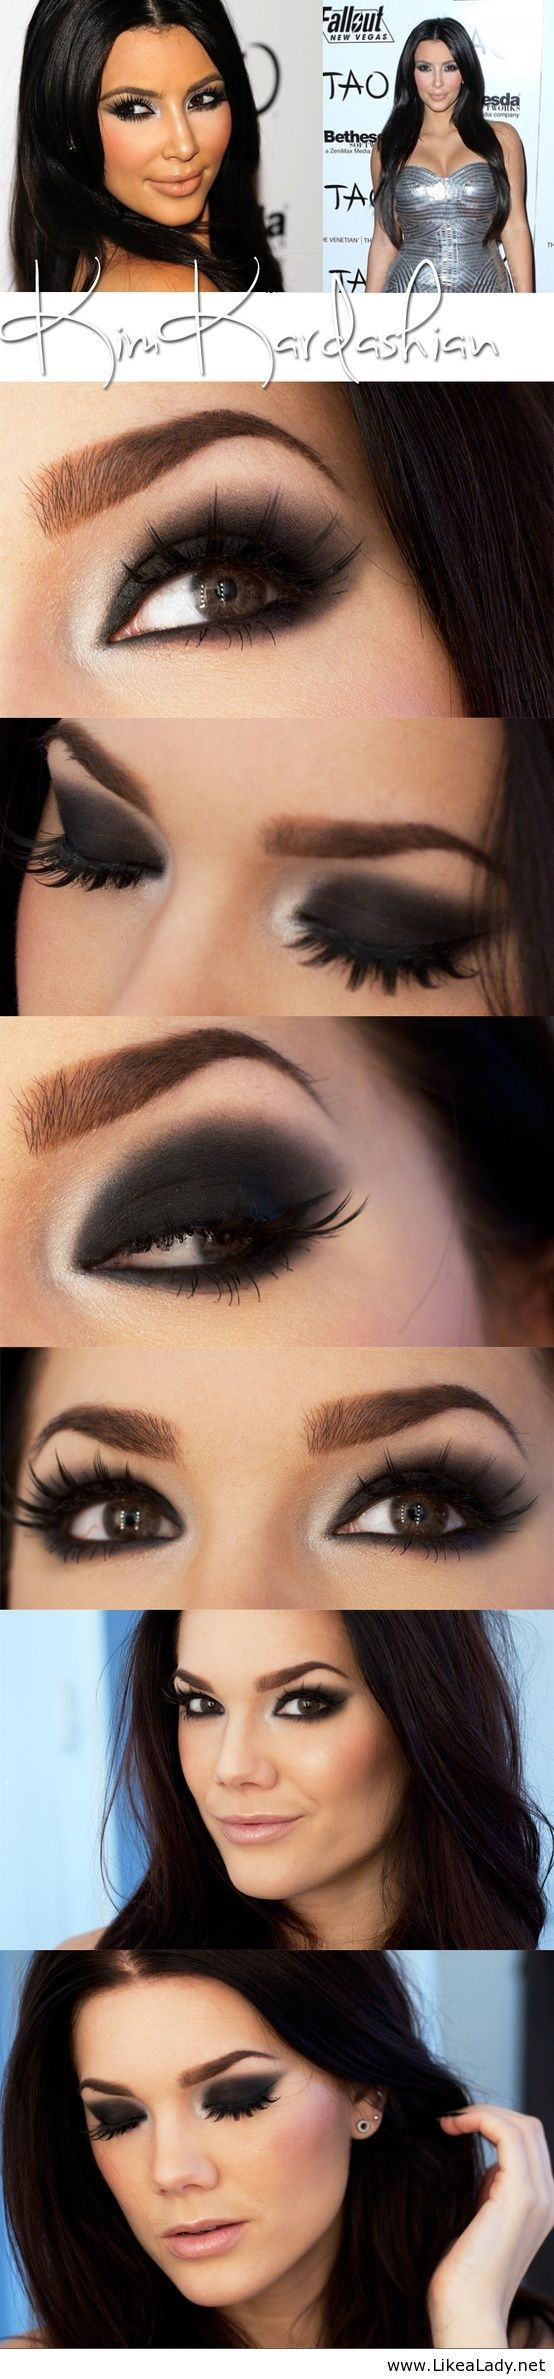 If you are going to wear this look you will definitely need some falsies! Some great ones that aren't too dramatic are by Ardell- Demi whispies.